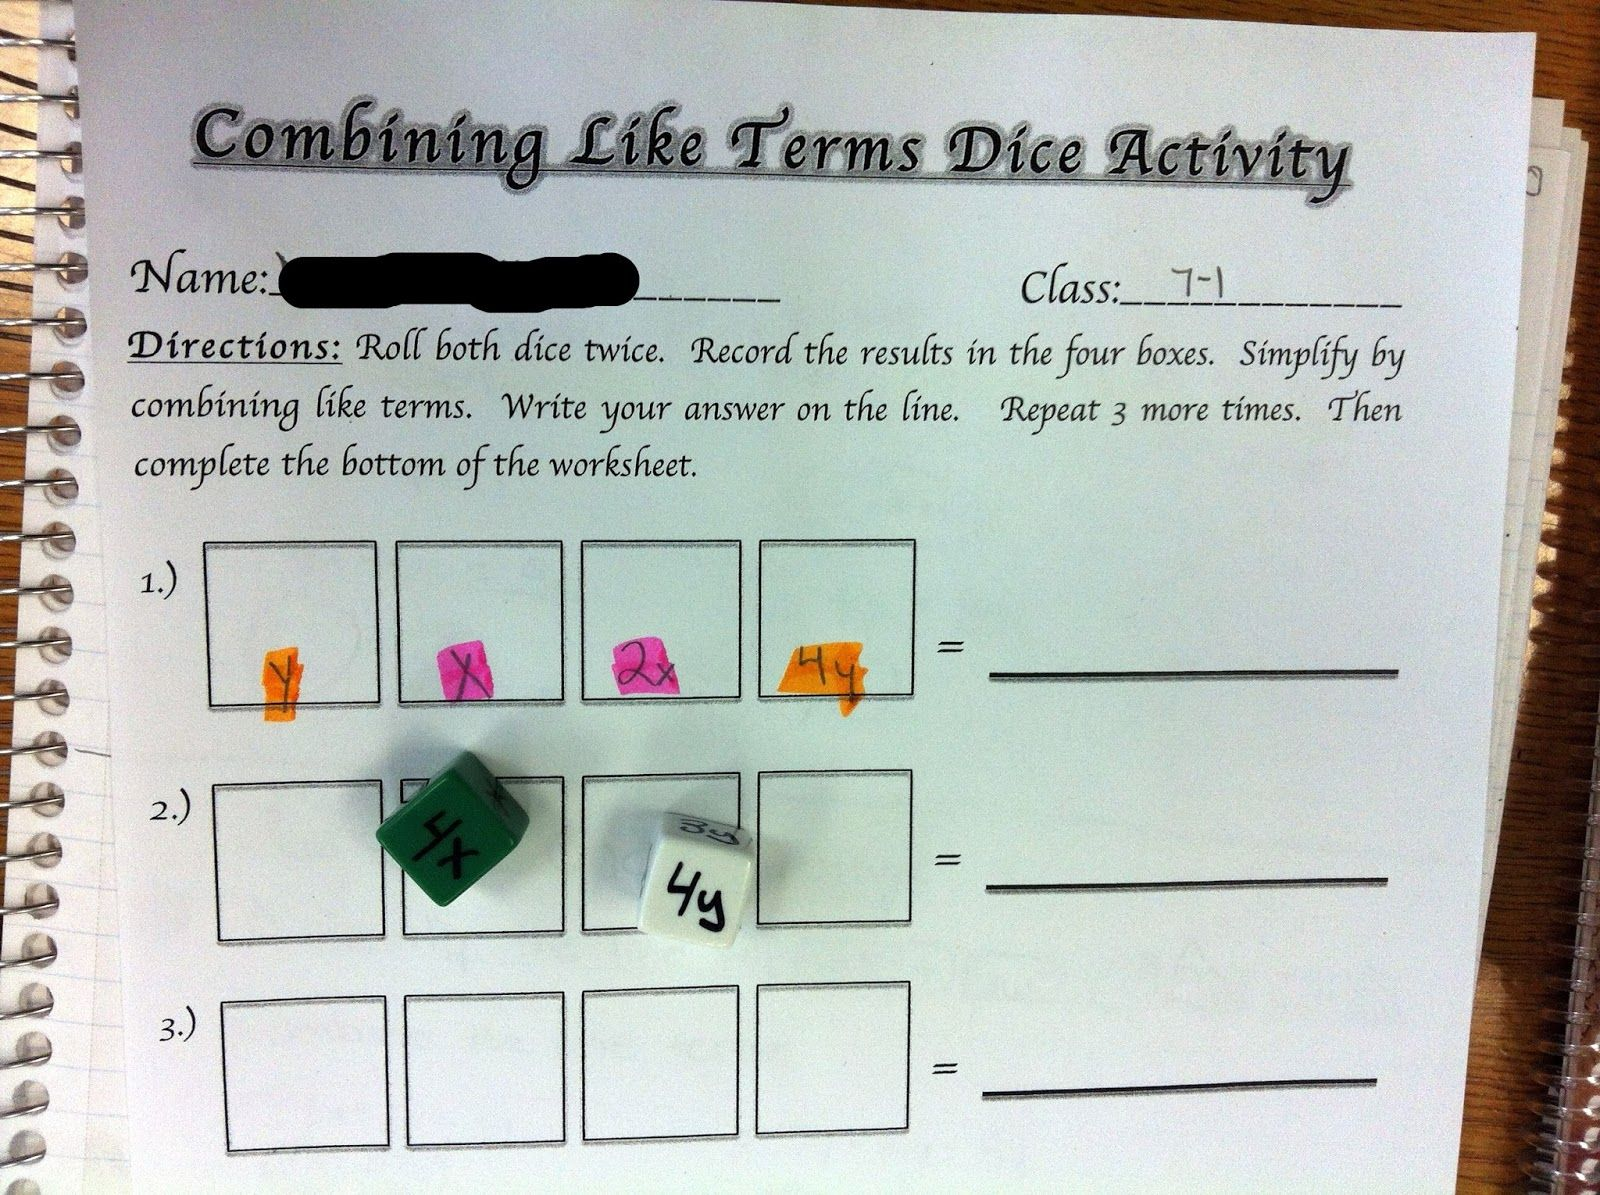 Combining Like Terms Dice Activity